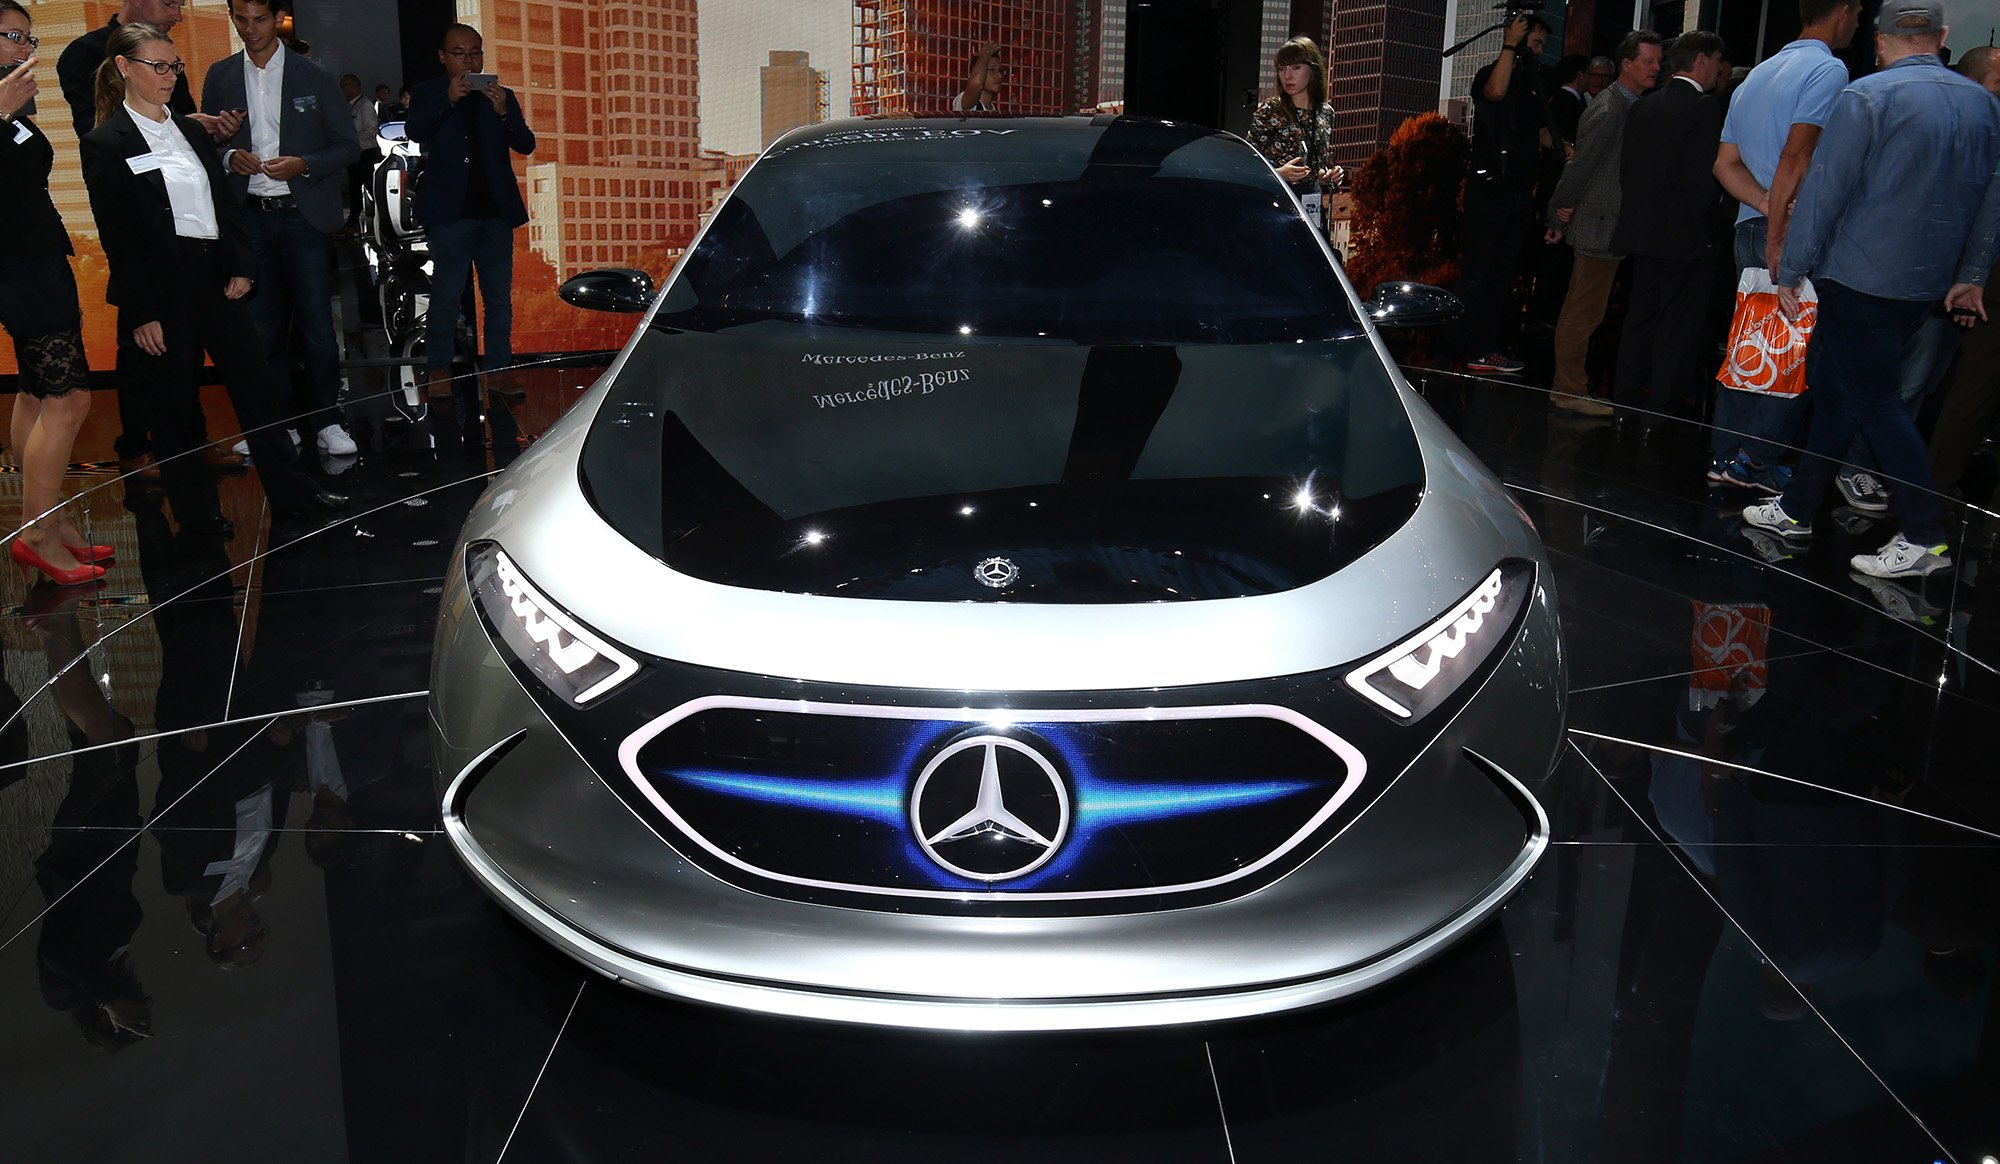 Mercedes benz says yes 39 to flying cars photos 1 of 3 for Mercedes benz cars com